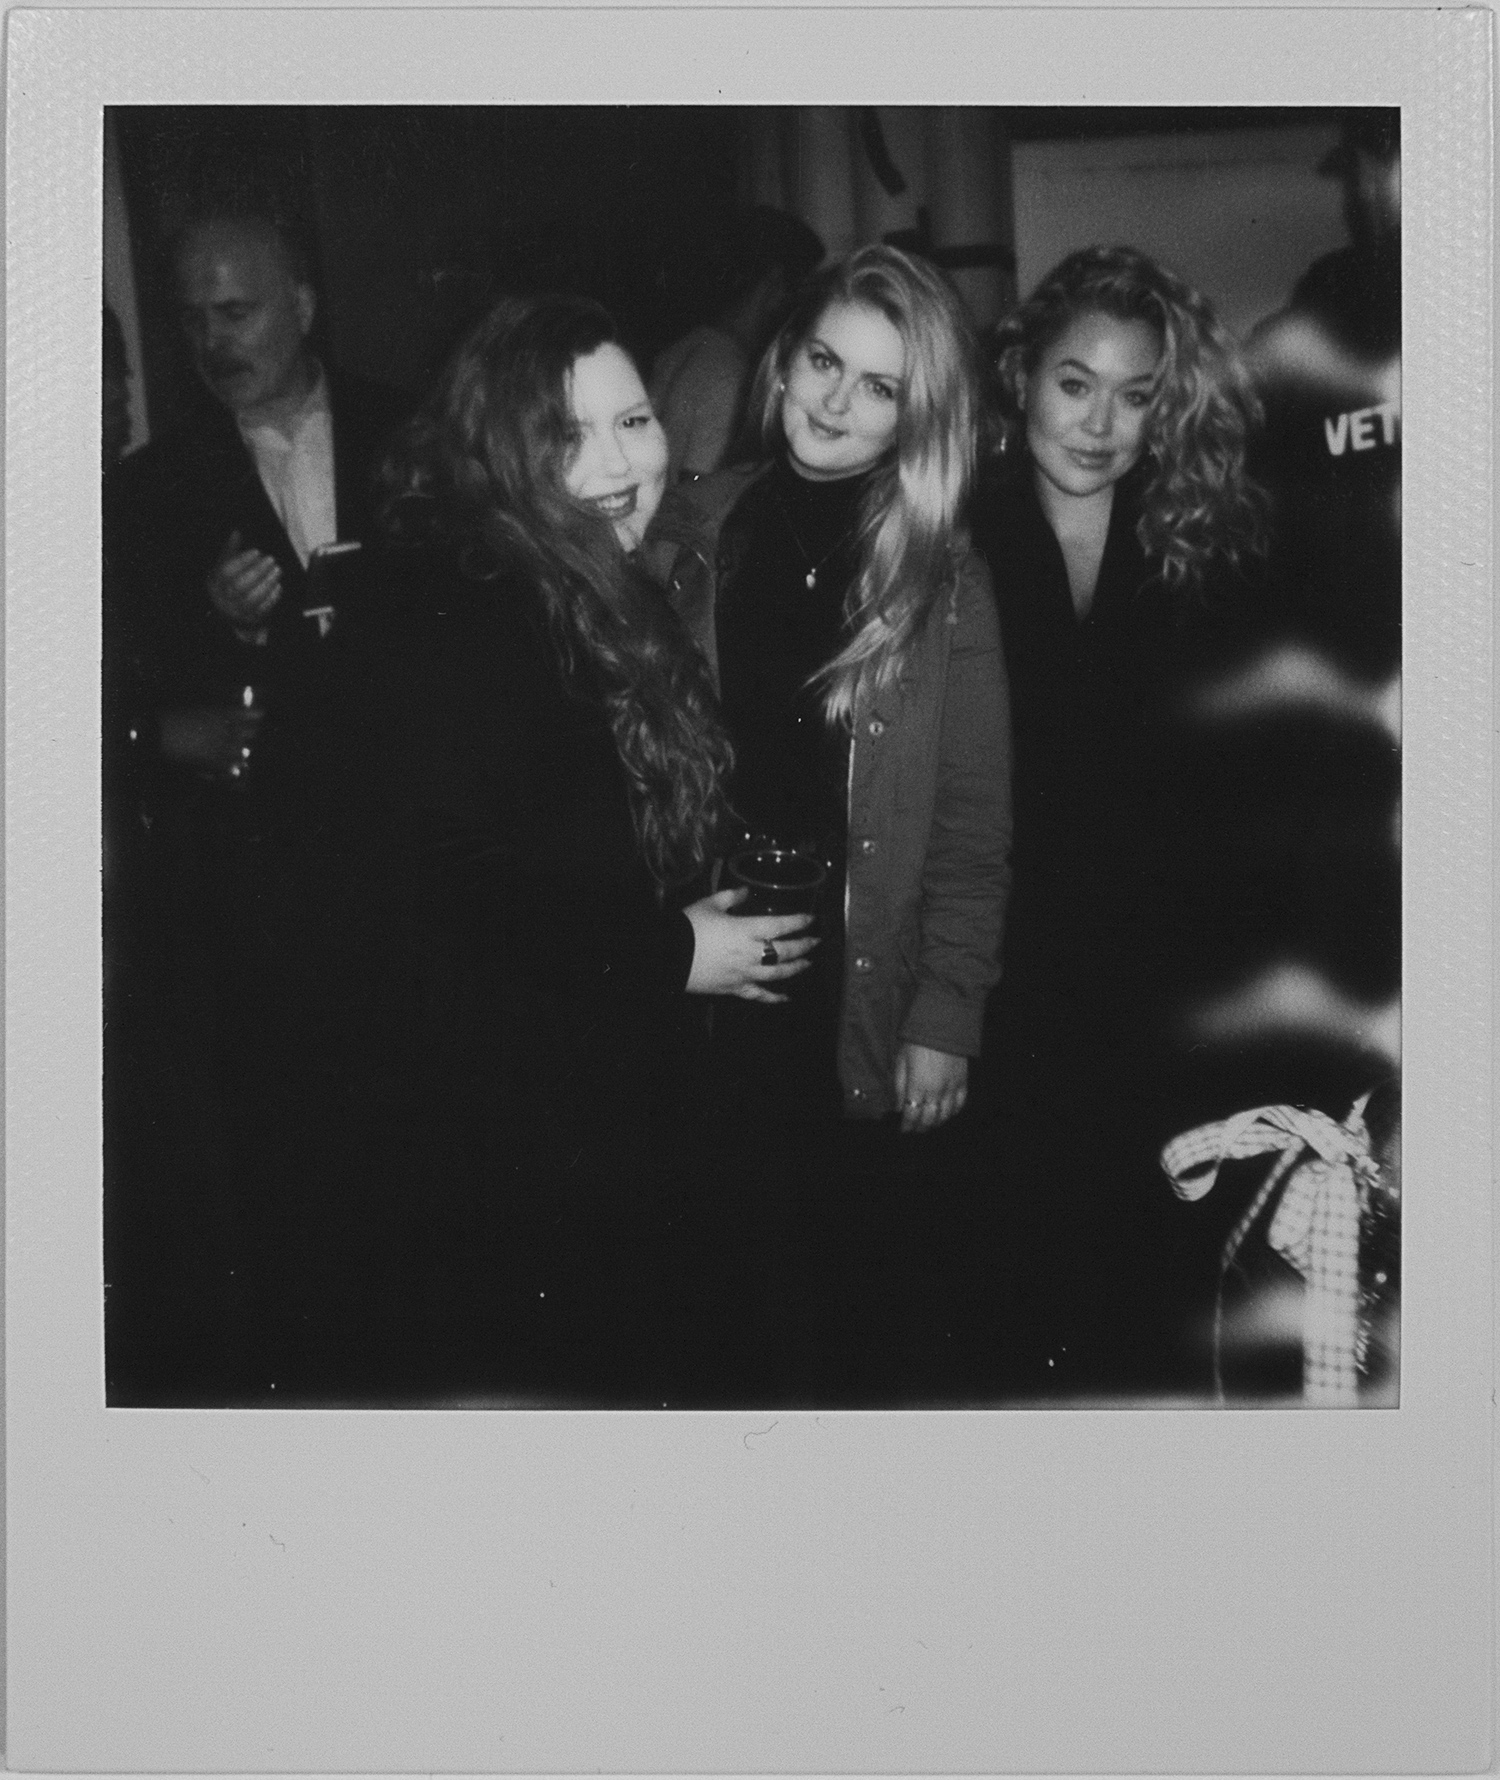 PYLOT ISSUE 04 LAUNCH PARTY IMPOSSIBLE PROJECT 18